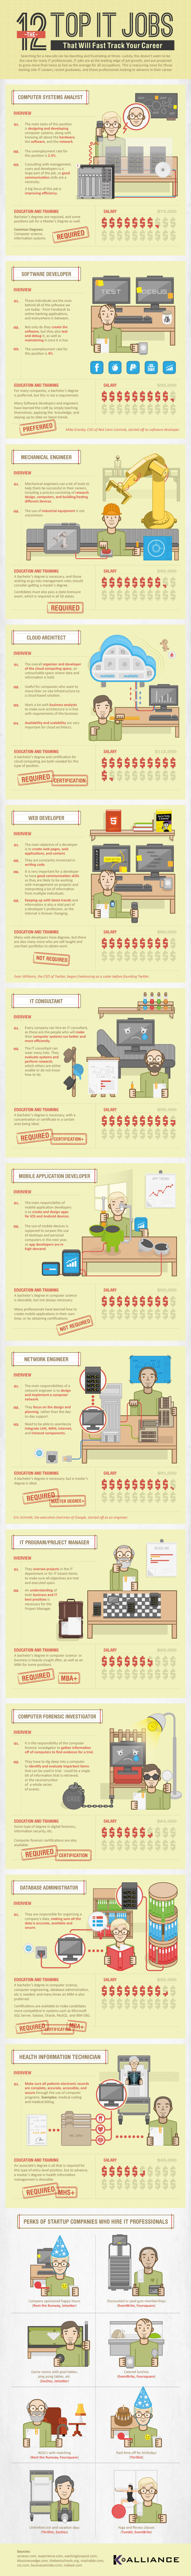 The 12 Top IT Jobs That Will Fast Track Your Career - infographic